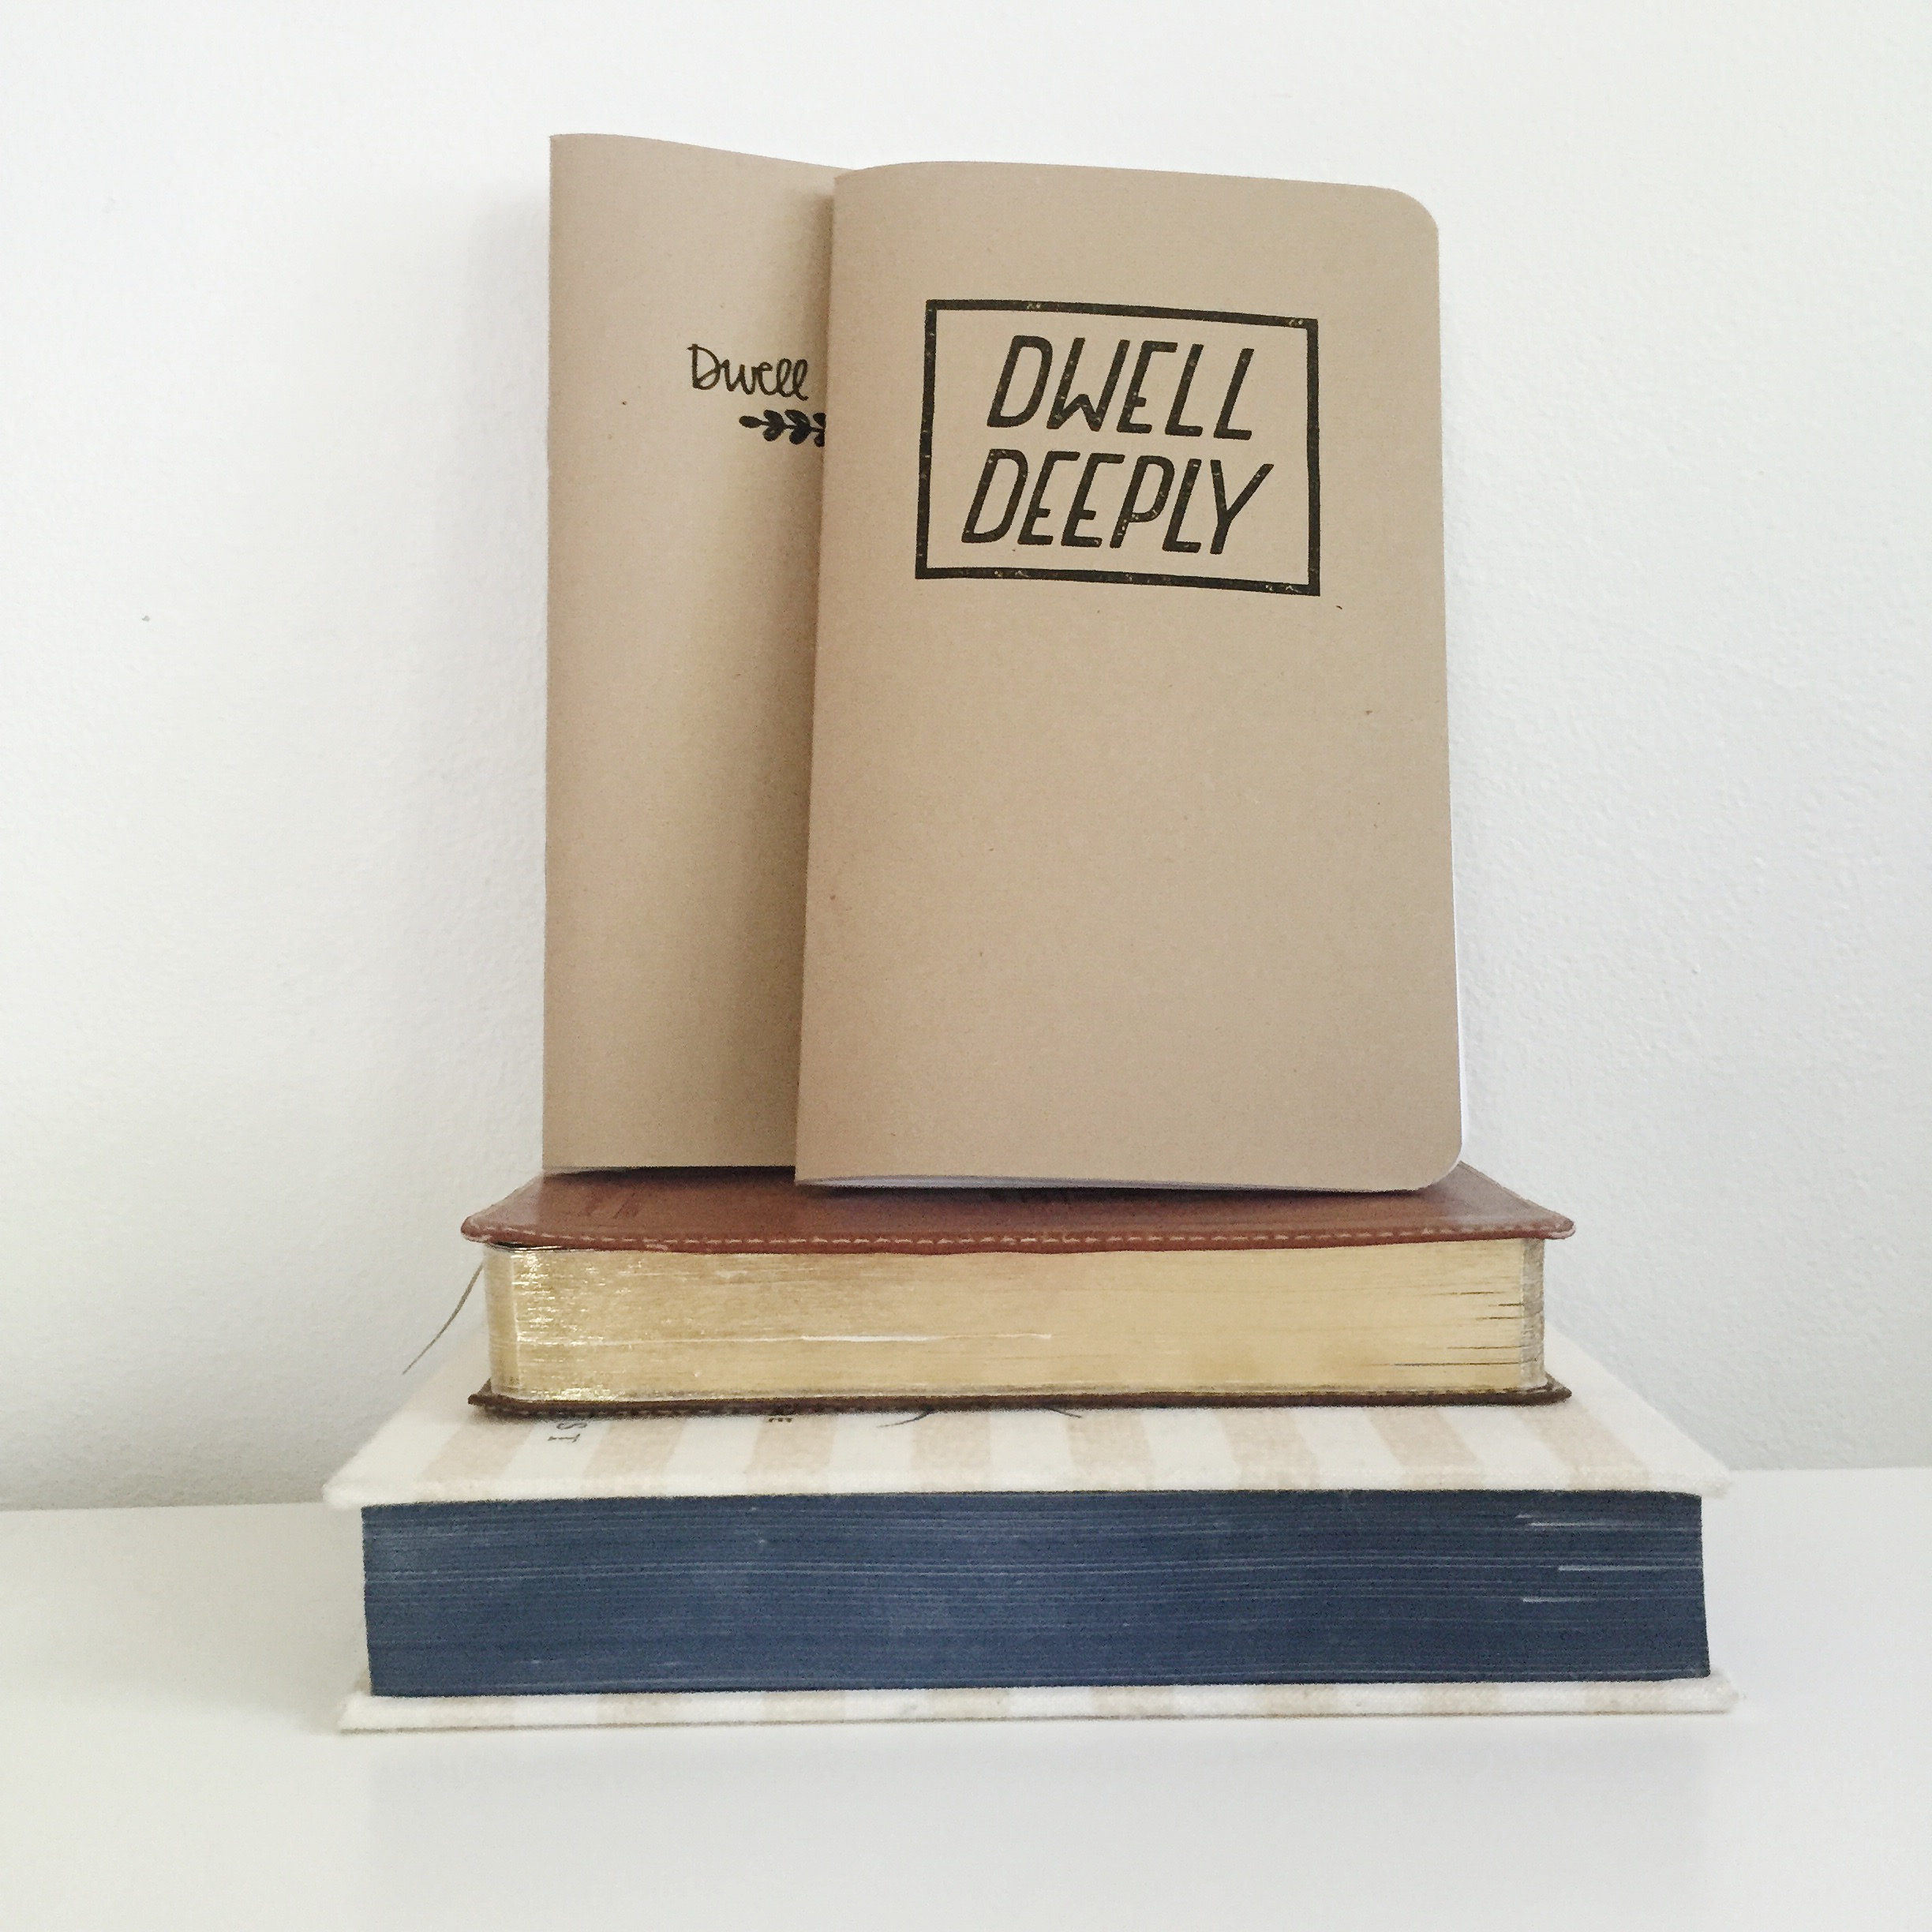 A journal + devotional book is an easy gift for graduates.